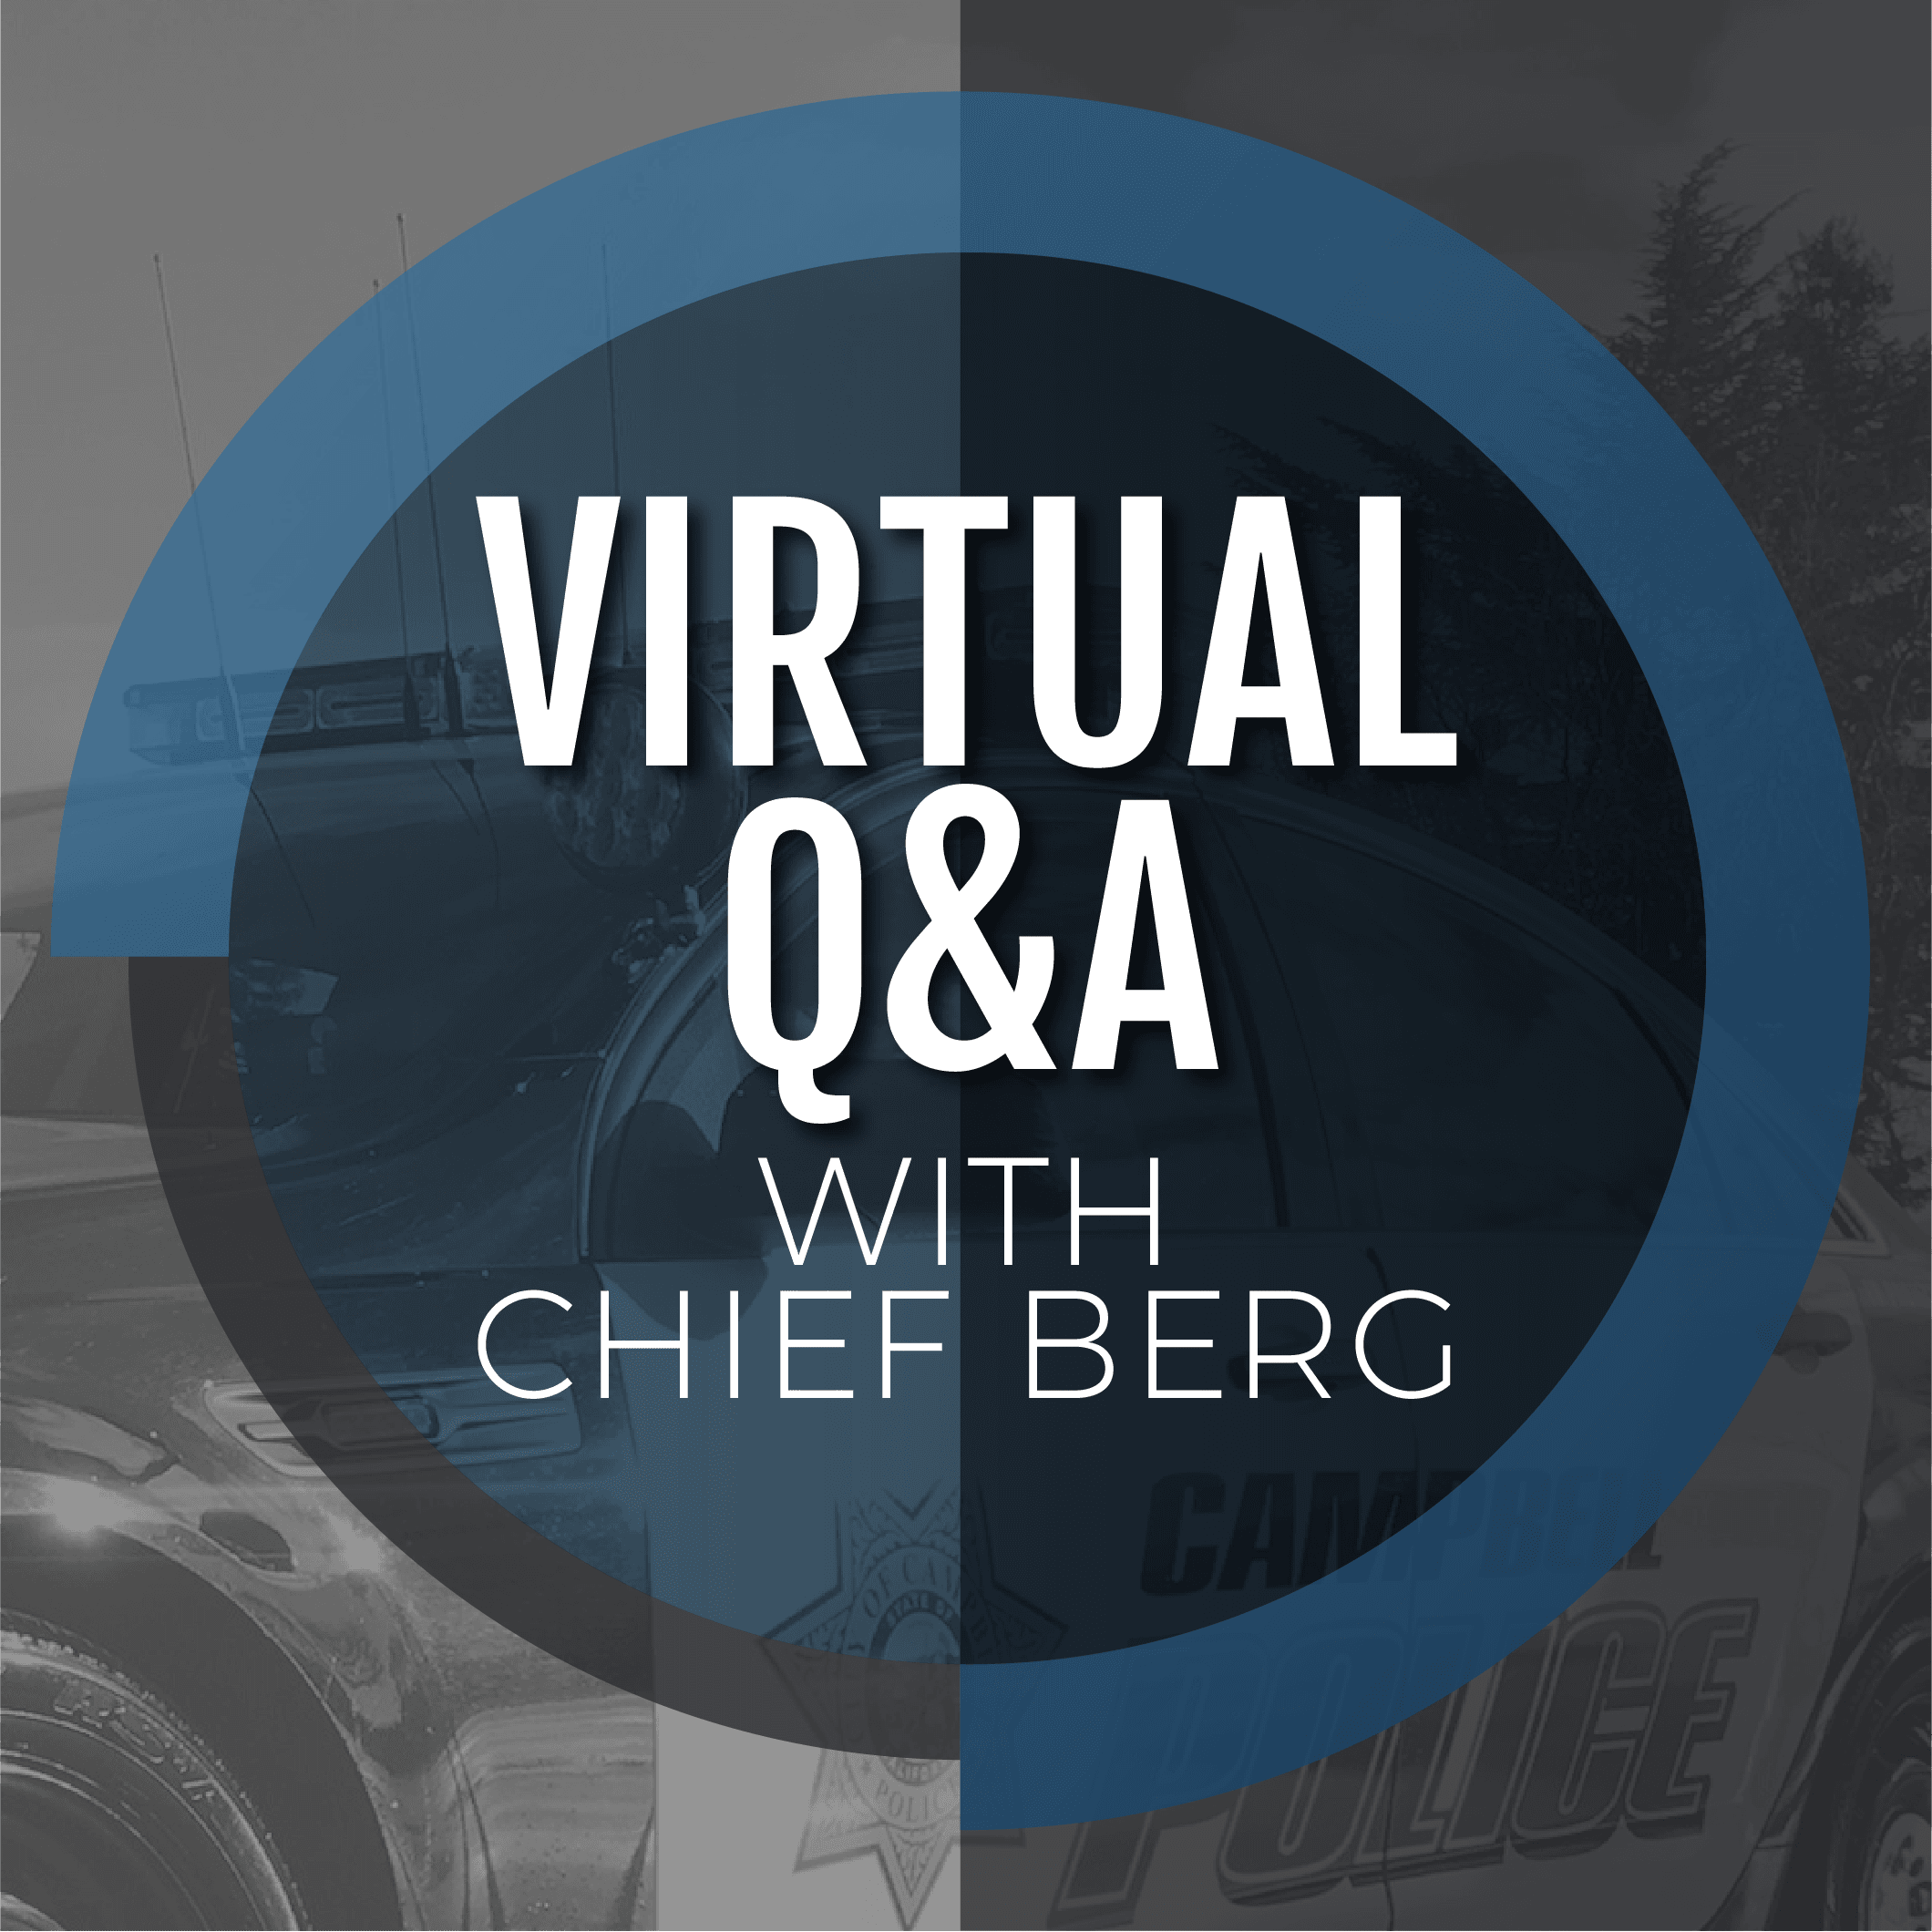 Virtual Q&A with Chief Berg